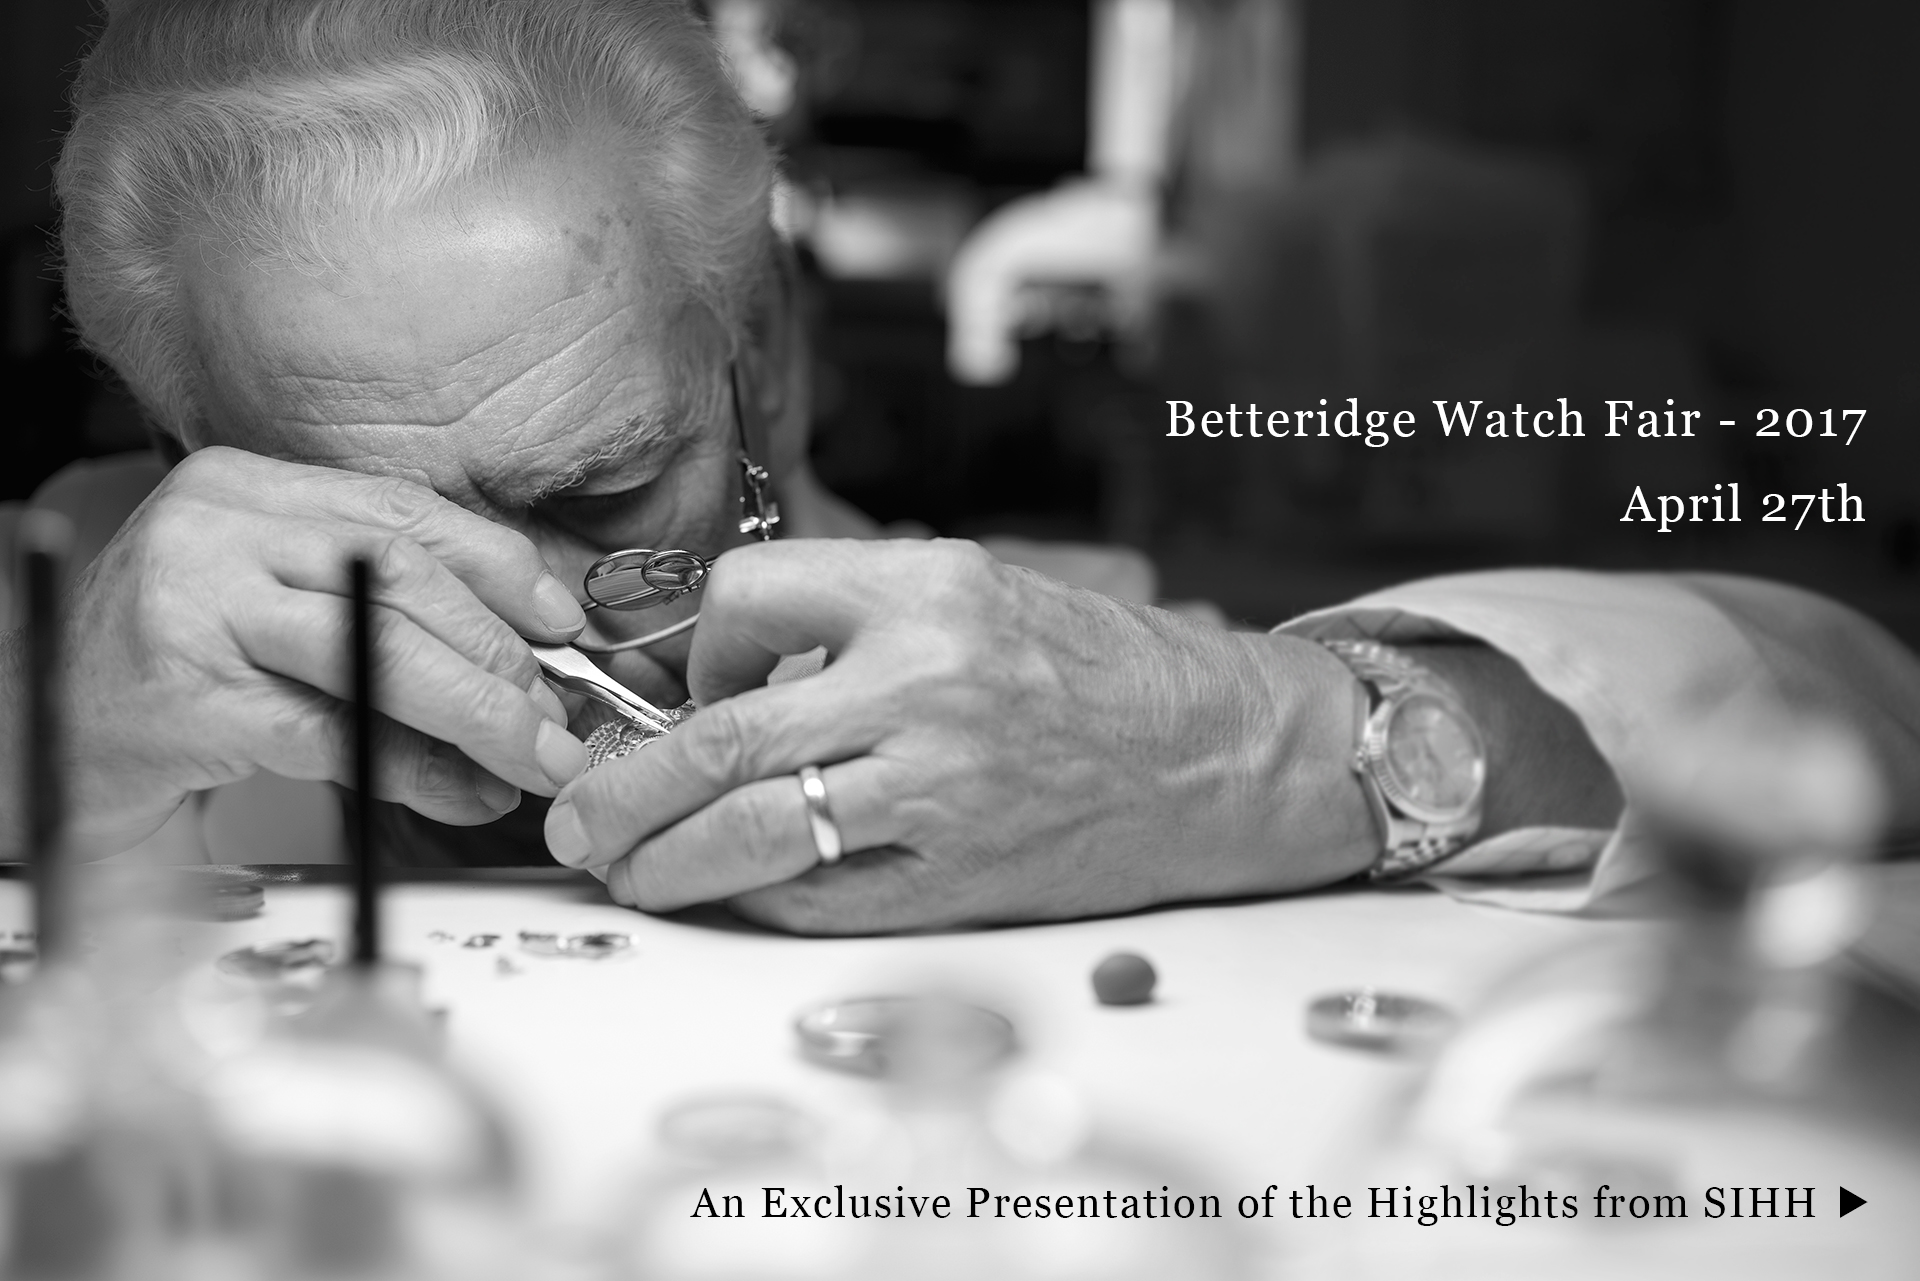 Betteridge Watch Fair - 2017